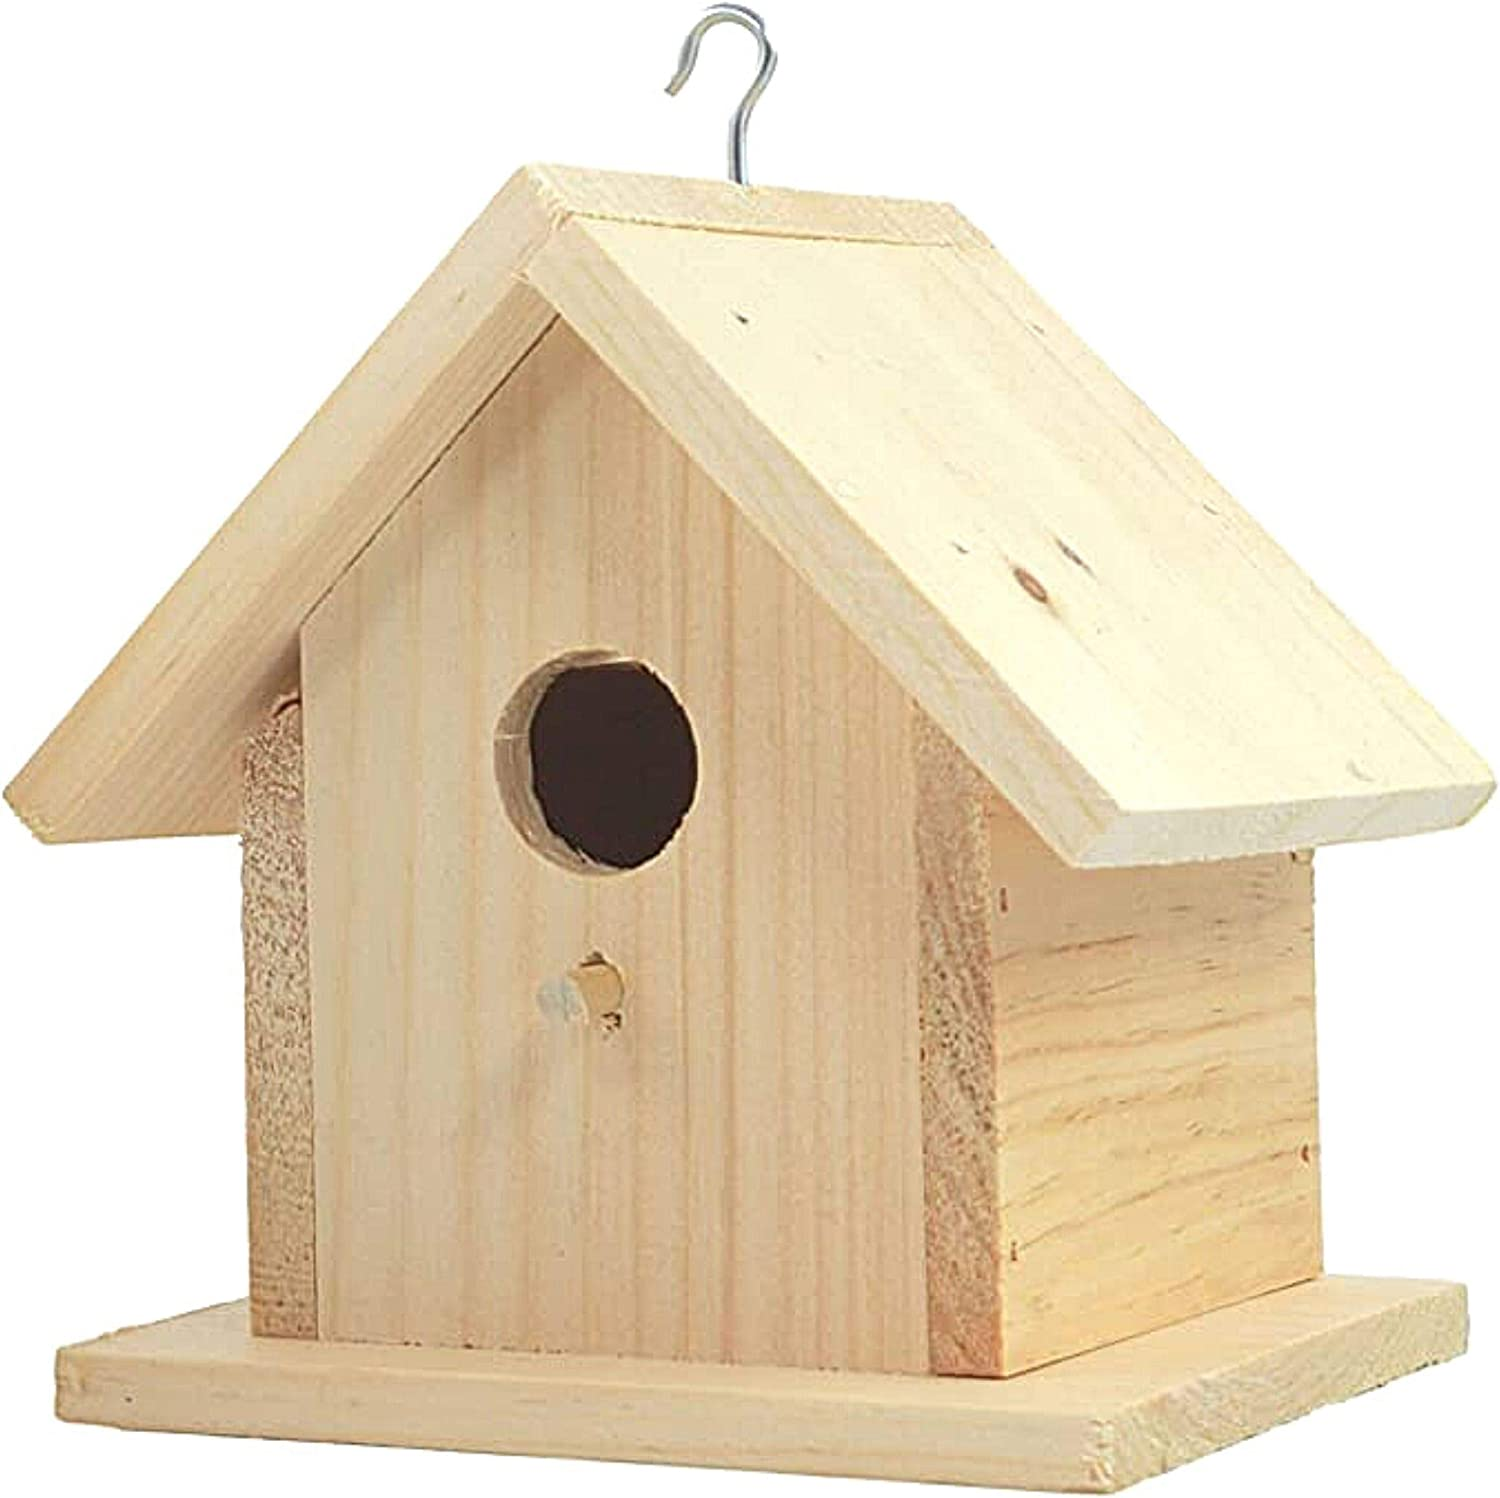 """Amazon.com : Unfinished Birdhouse to Paint for Birdwatching with Perch, Natural Wood Pine Frame for Finches and Songbirds, Heavy Duty Outdoor Hanging Use (6.5"""") : Garden & Outdoor"""